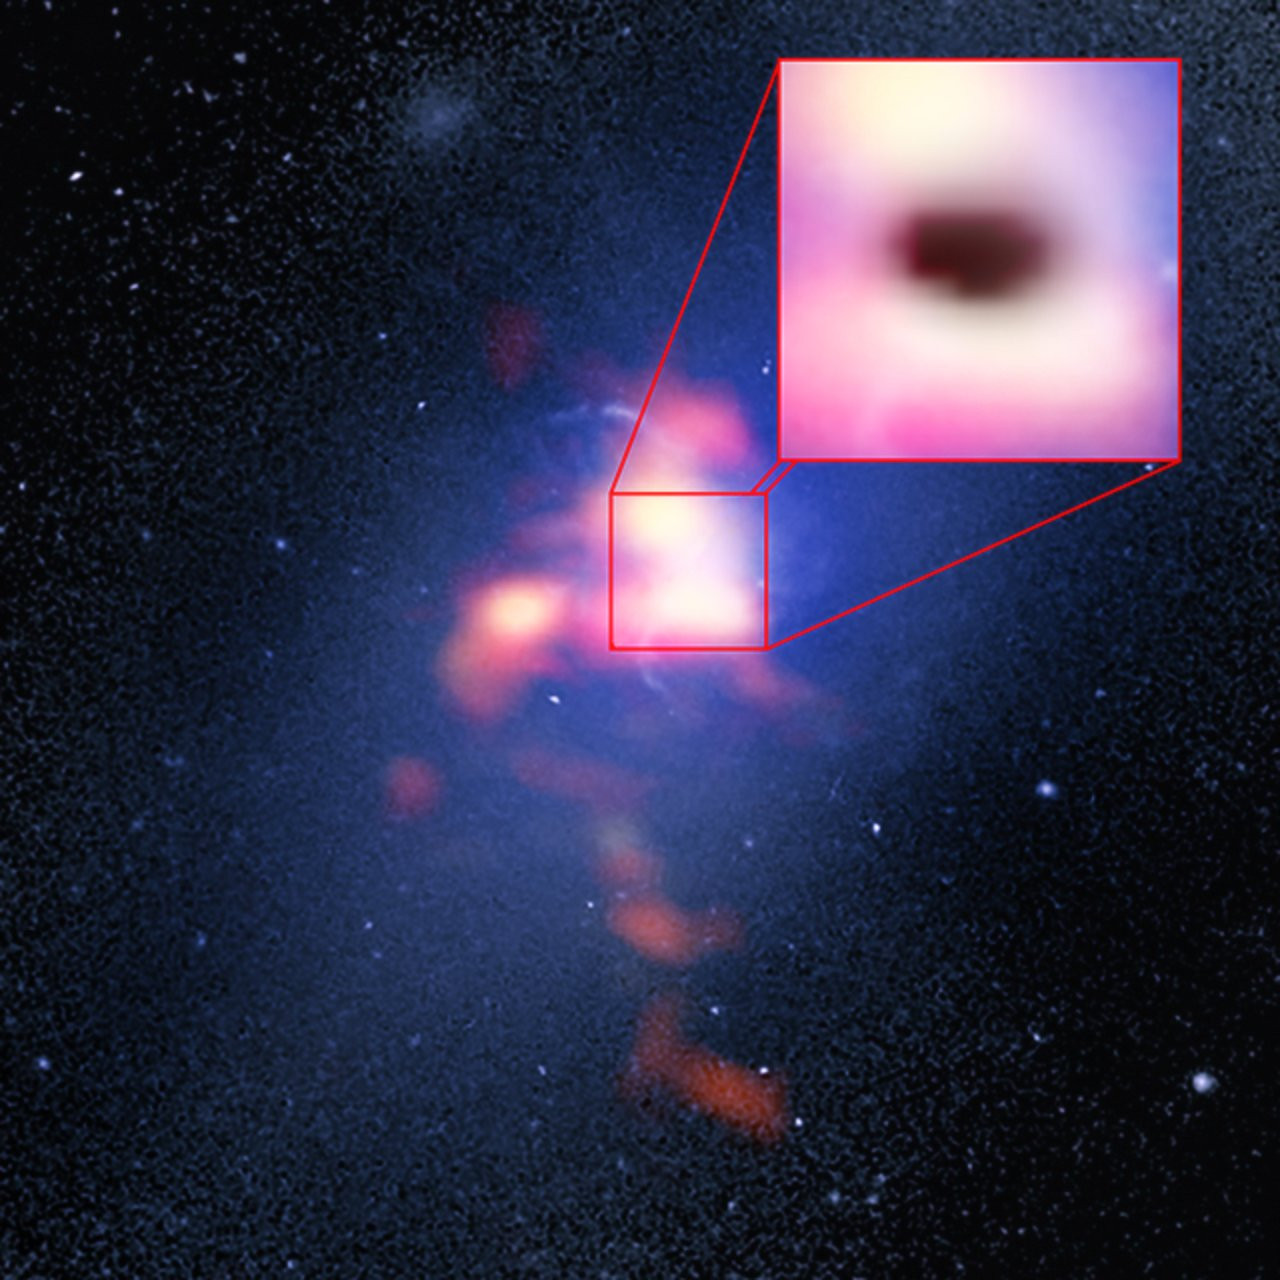 """The background image of the Abell 2597 Brightest Cluster Galaxy (blue) is from the NASA/ESA Hubble Space Telescope. The foreground (red) is ALMA data showing the distribution of carbon monoxide gas in and around the galaxy. The pull-out box shows the ALMA data of the """"shadow"""" (black) produced by absorption of the millimetre-wavelength light emitted by electrons whizzing around powerful magnetic fields generated by the galaxy's supermassive black hole. The shadow indicates that cold clouds of molecular gas are raining in on the black hole. Image credit: B. Saxton (NRAO/AUI/NSF)/G. Tremblay et al./NASA/ESA Hubble/ALMA (ESO/NAOJ/NRAO)."""